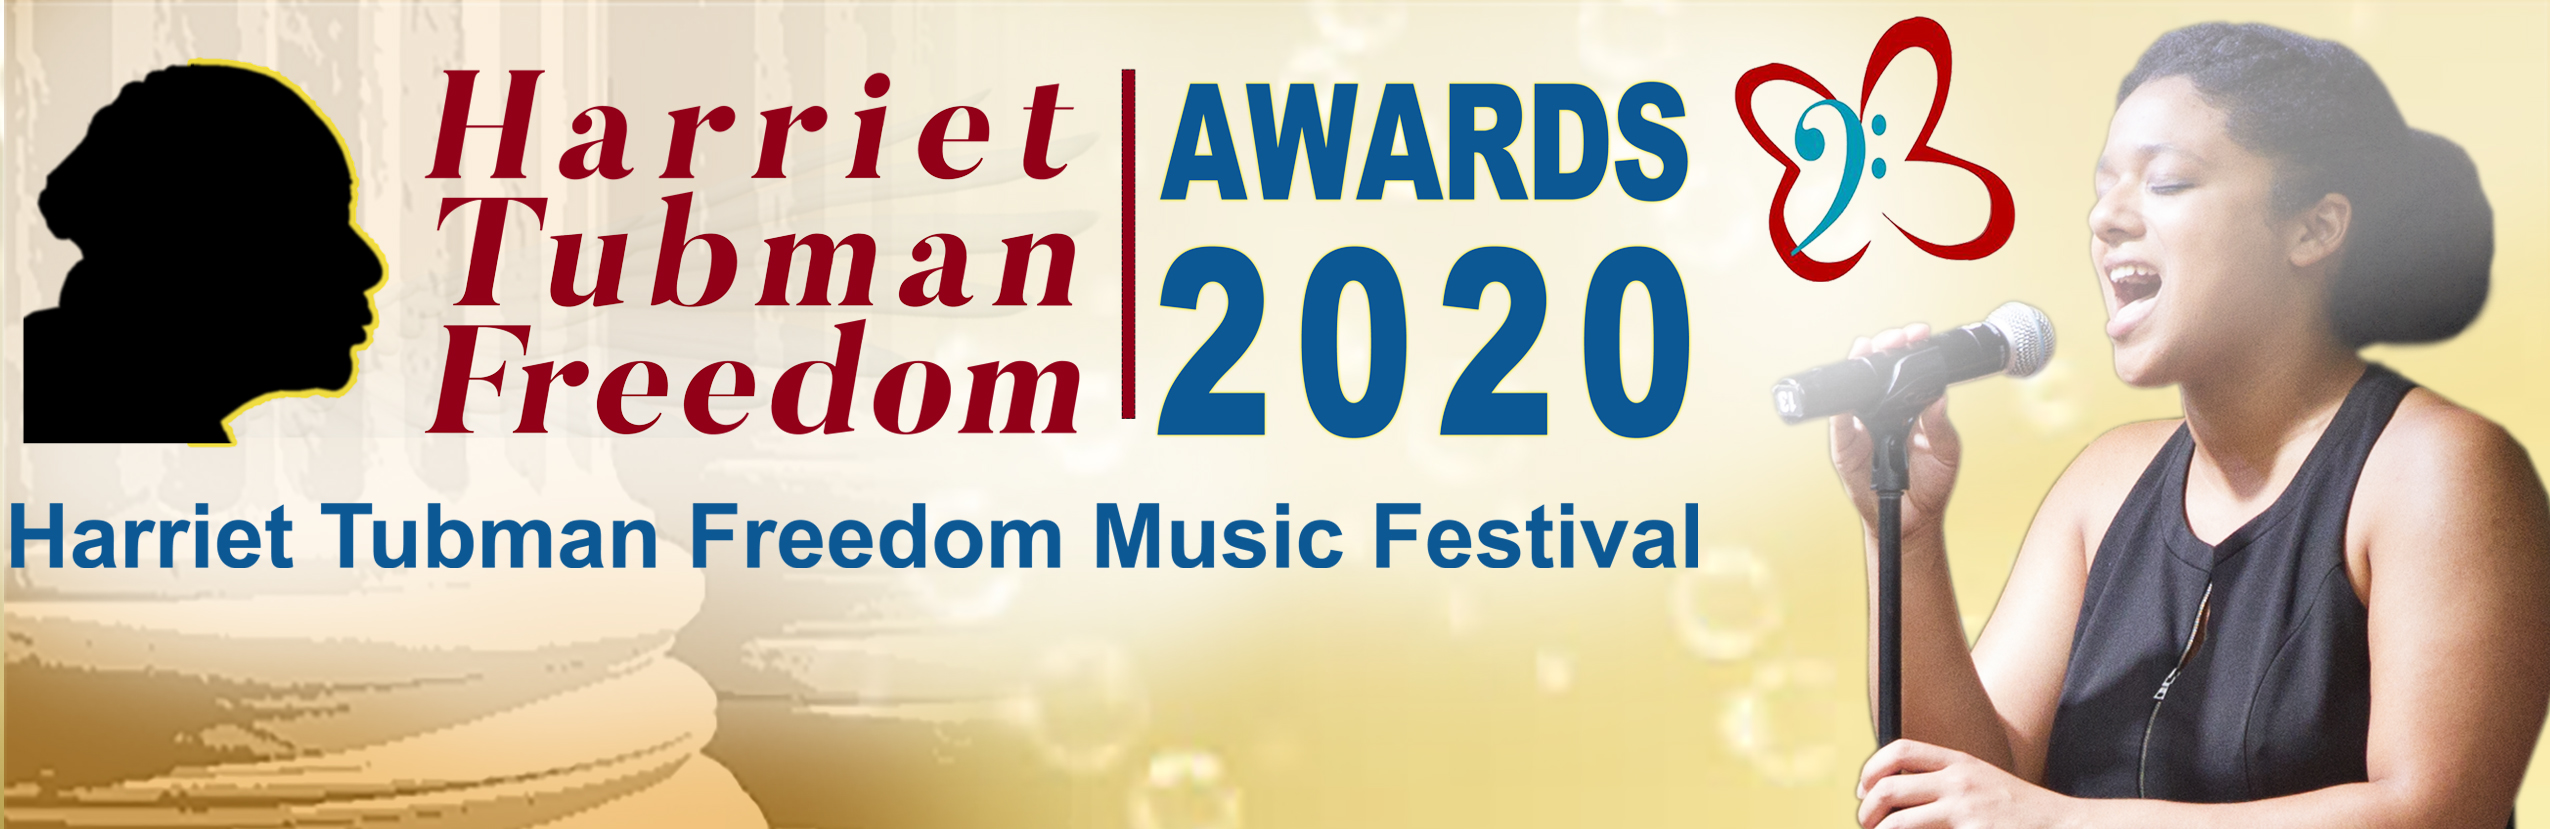 Harriet Tubman Freedom Awards - Promotion - Banner